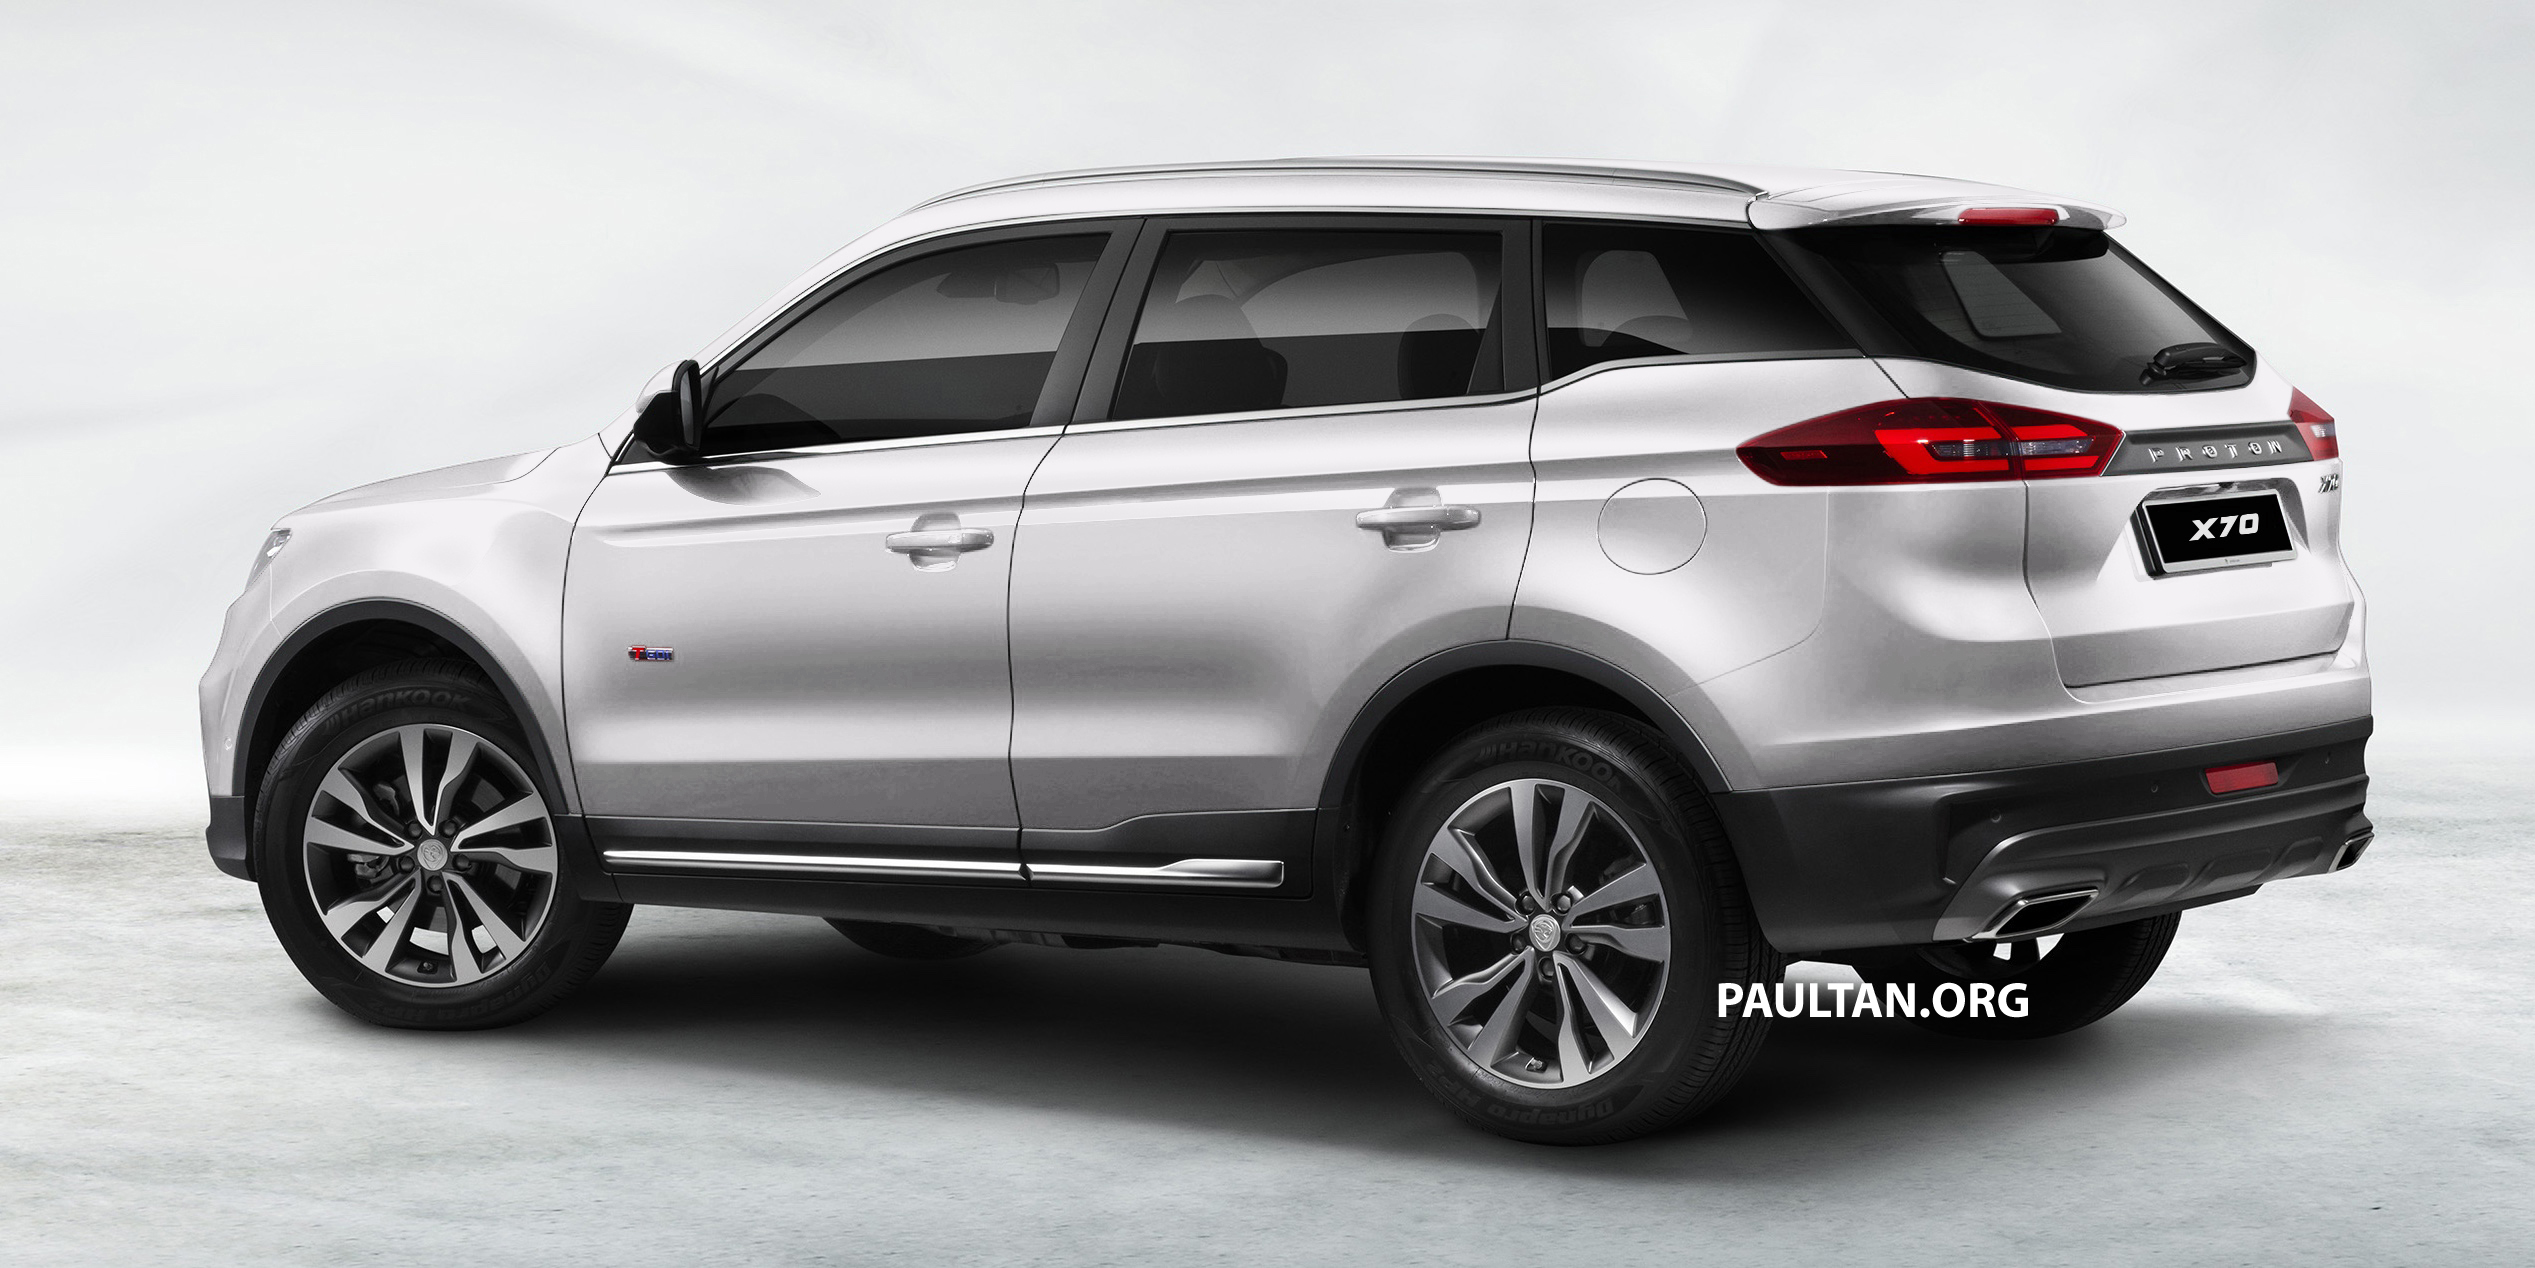 Proton X70 SUV – exterior paint and interior colours Paul Tan - Image 859045